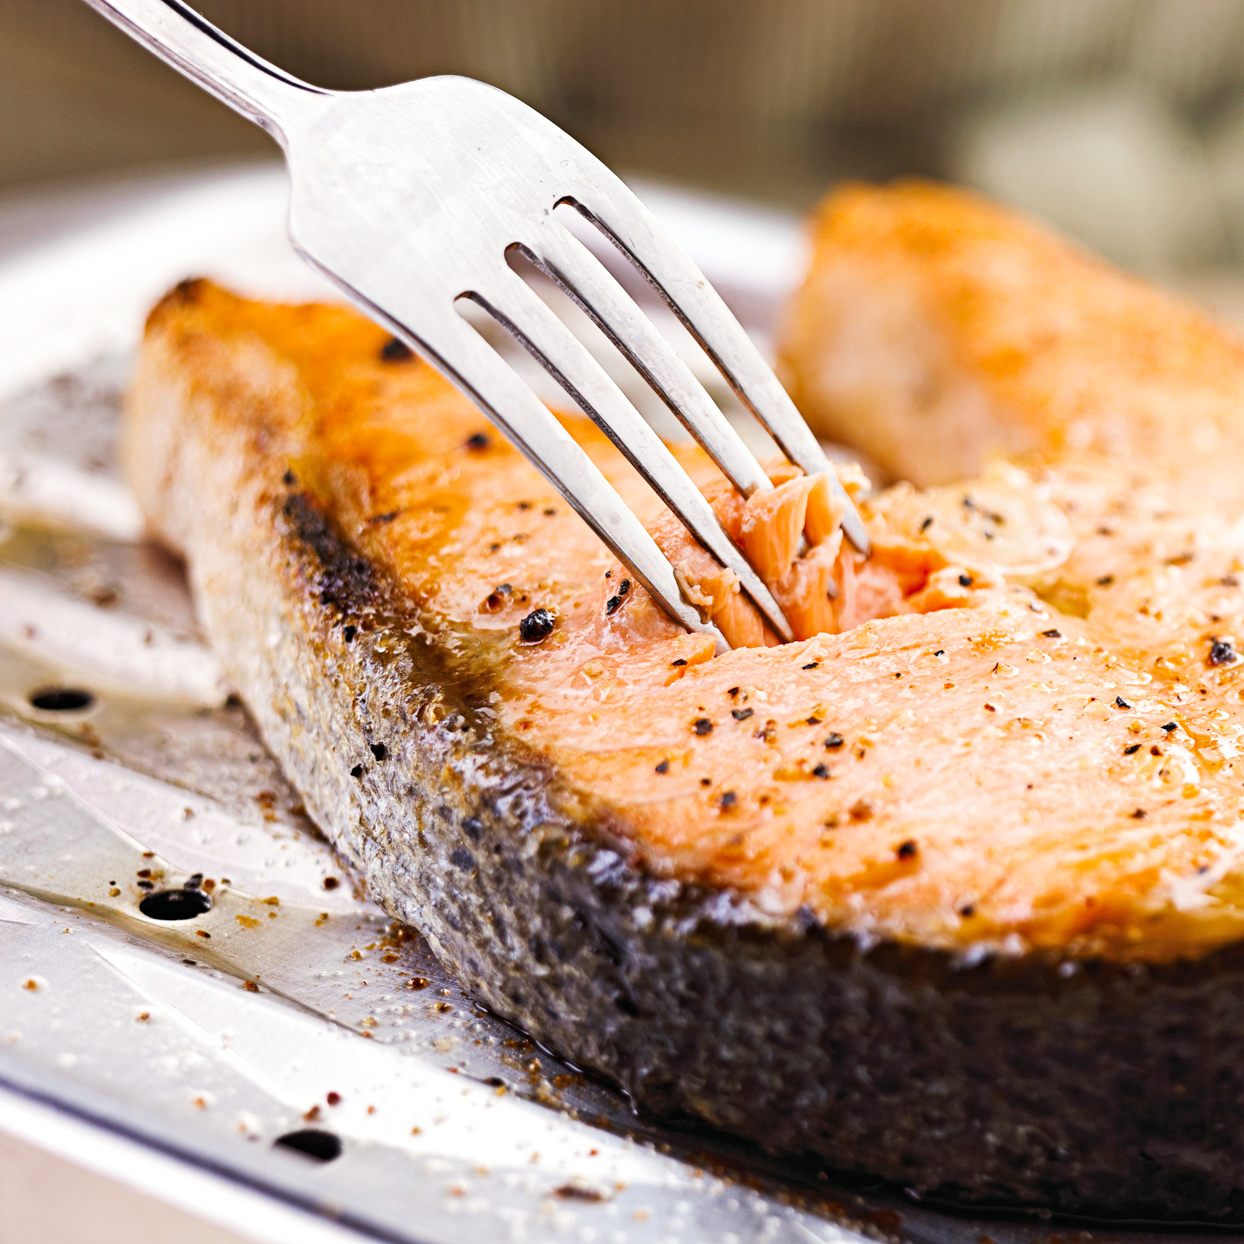 cooked filet of salmon with fork